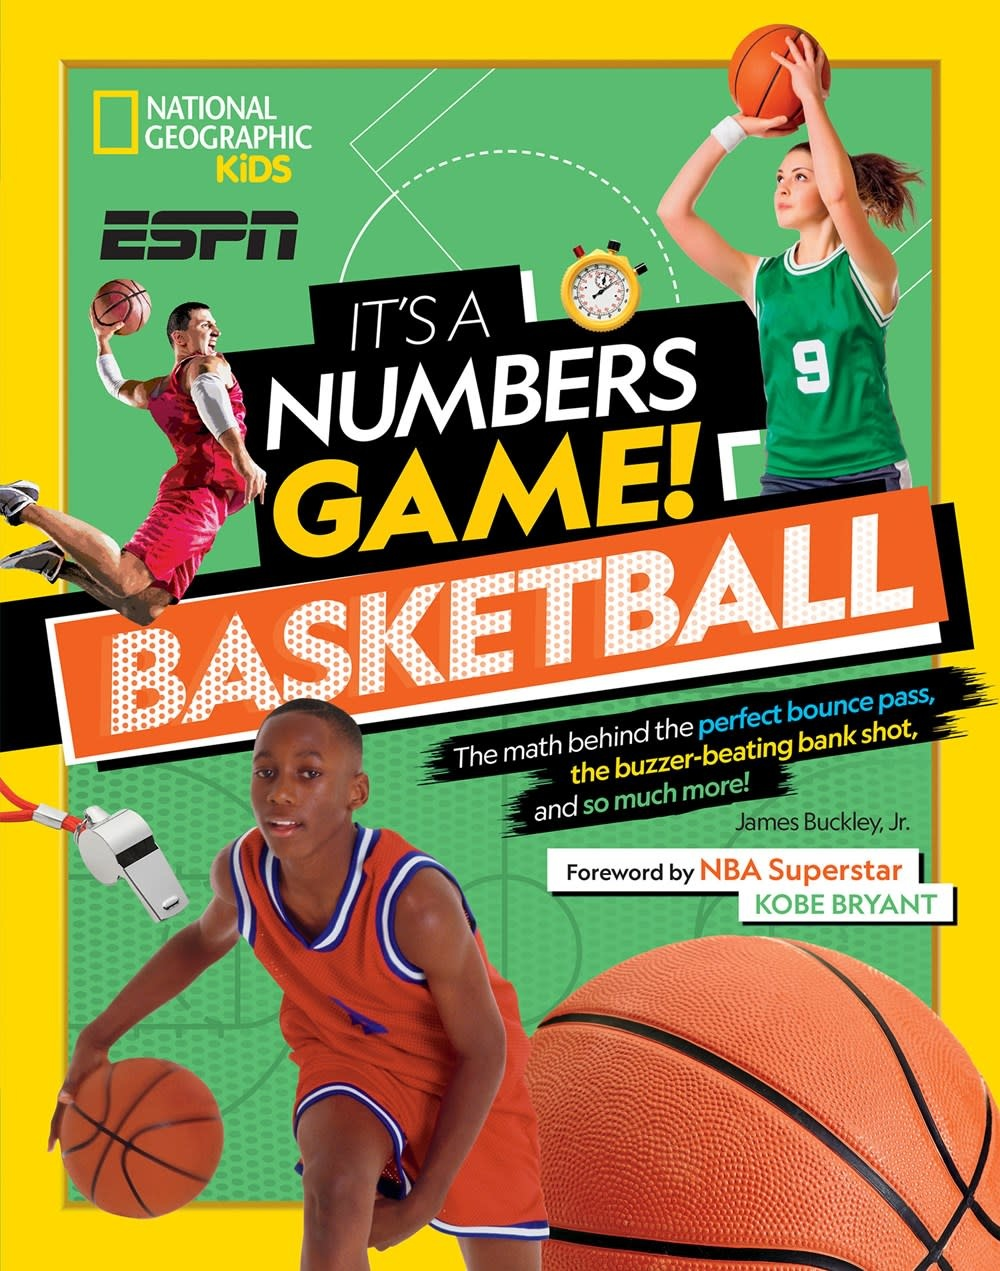 National Geographic Children's Books Nat Geo Kids: It's a Numbers Game! Basketball